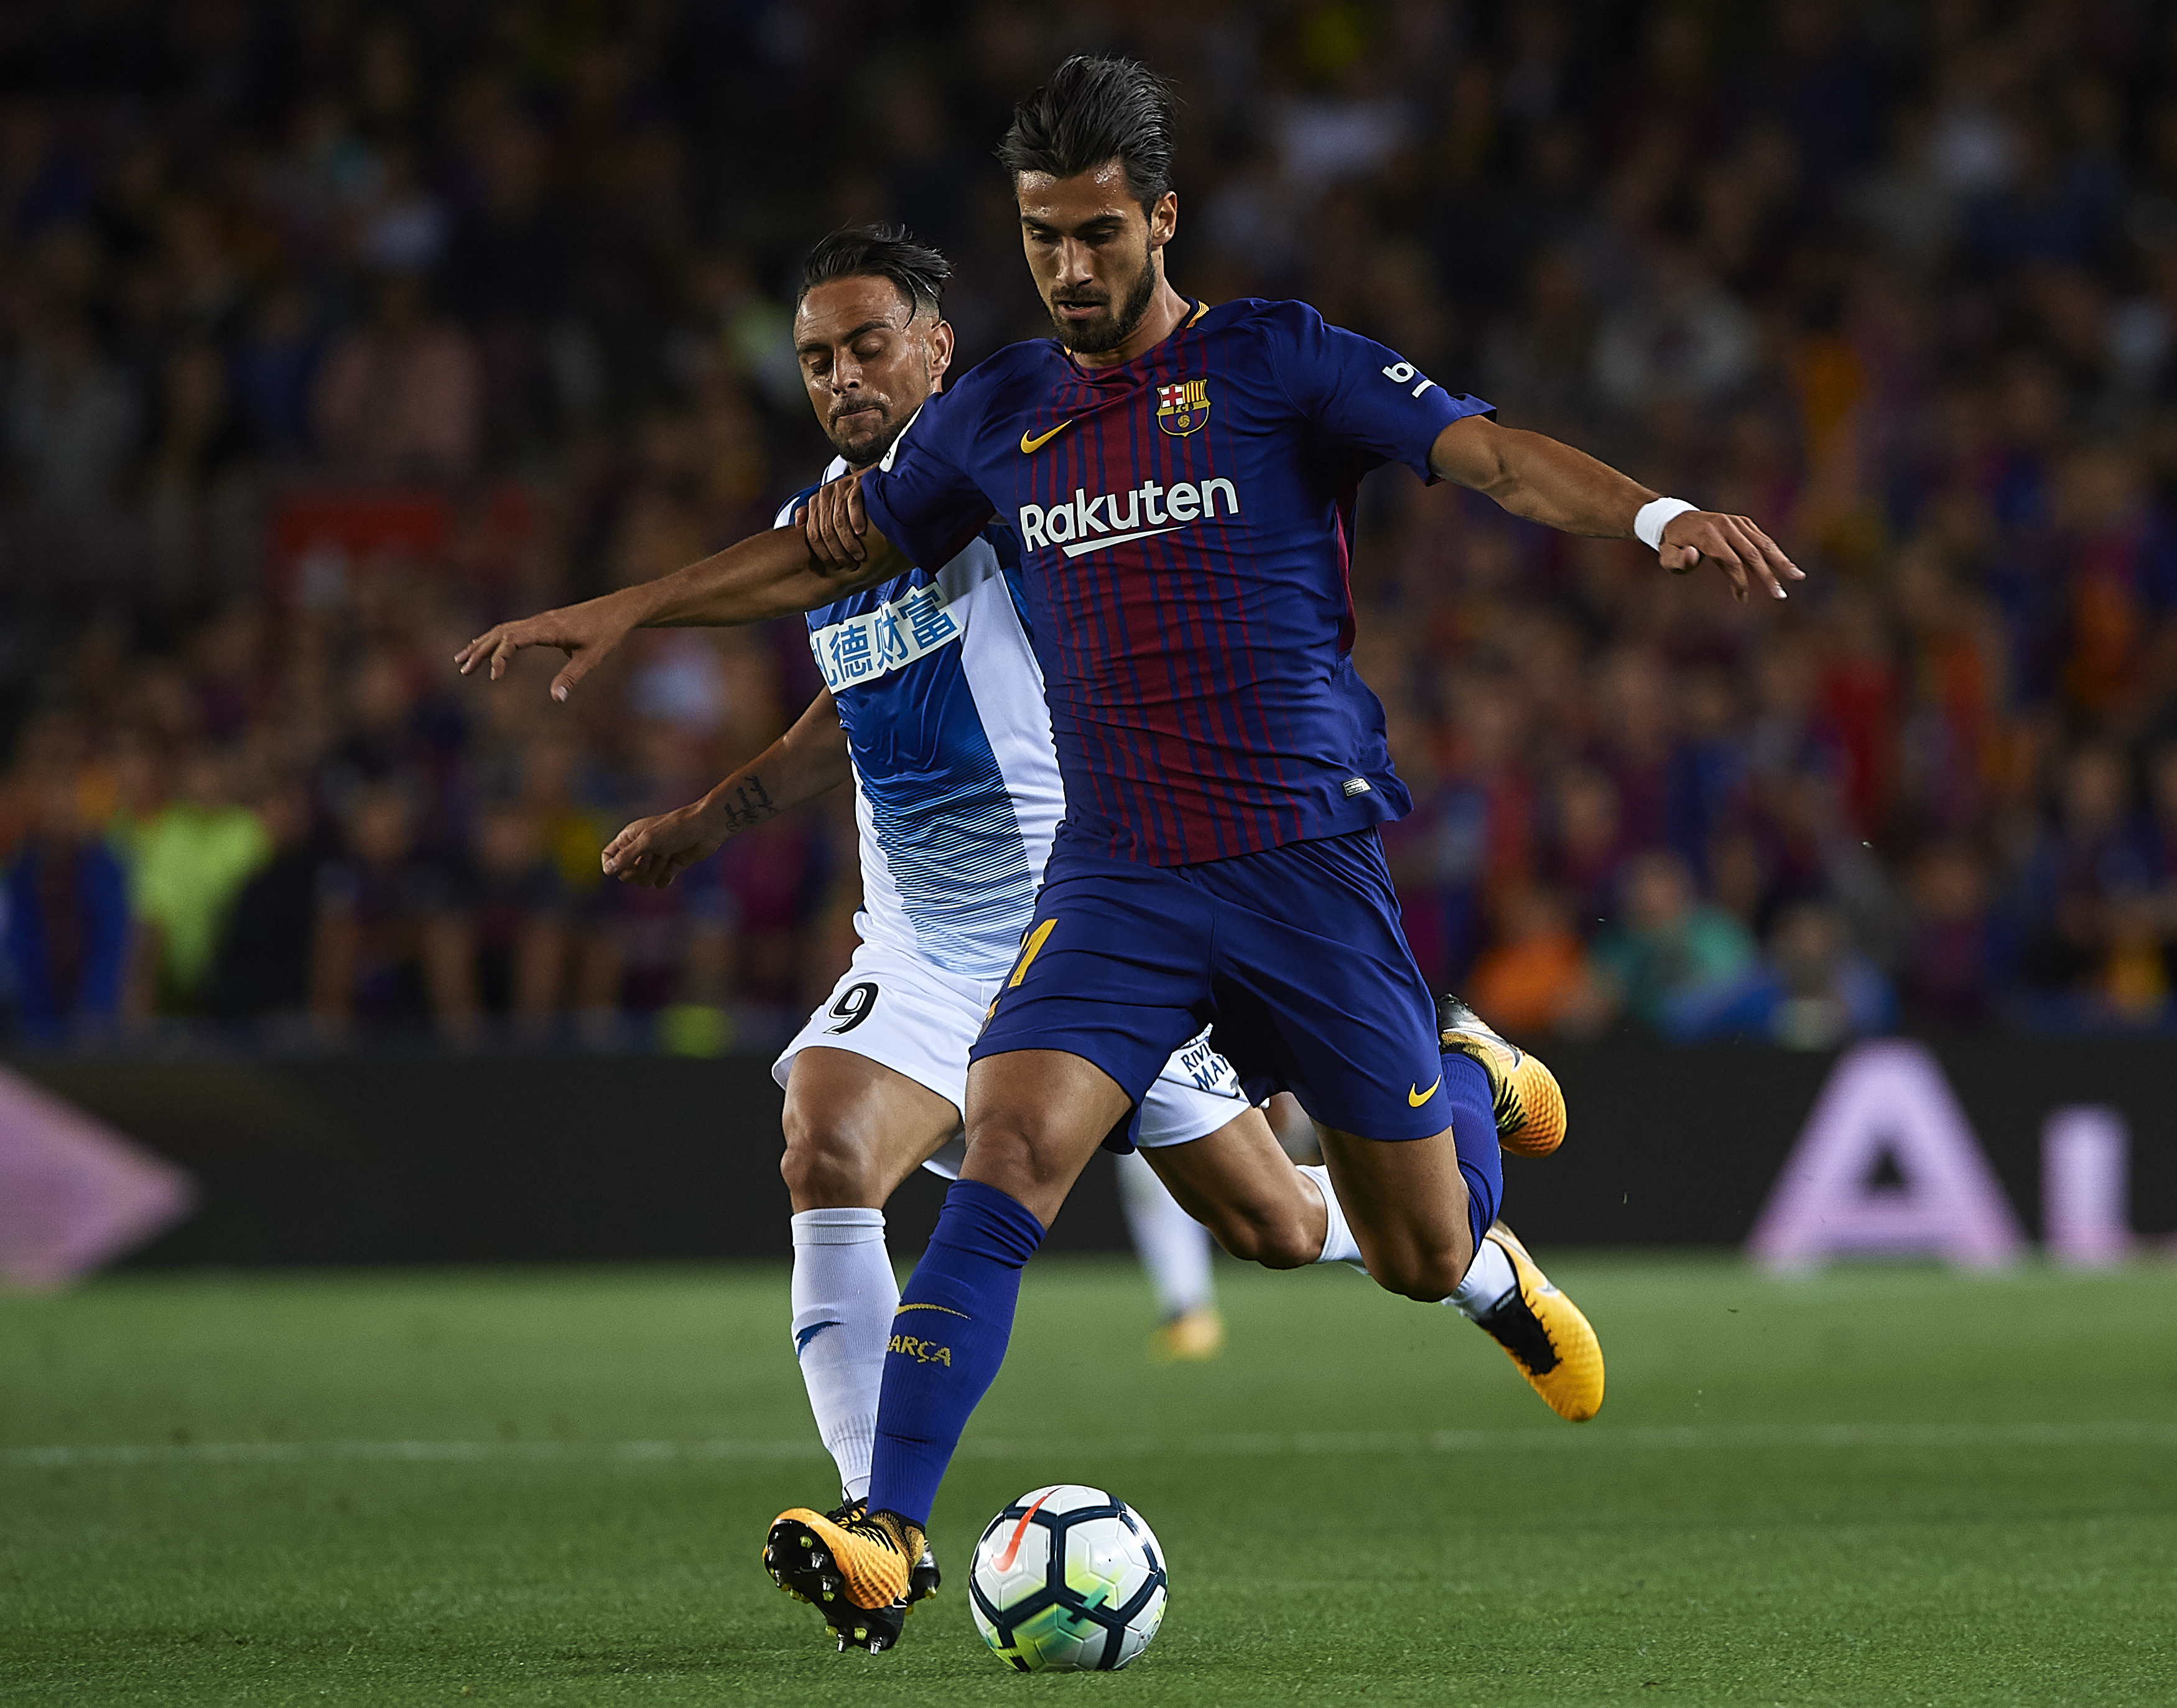 BARCELONA, SPAIN - SEPTEMBER 09: Andre Gomes (R) of Barcelona competes for the ball with Sergio Garcia of Espanyol during the La Liga match between Barcelona and Espanyol at Camp Nou on September 9, 2017 in Barcelona, Spain. (Photo by Manuel Queimadelos Alonso/Getty Images)